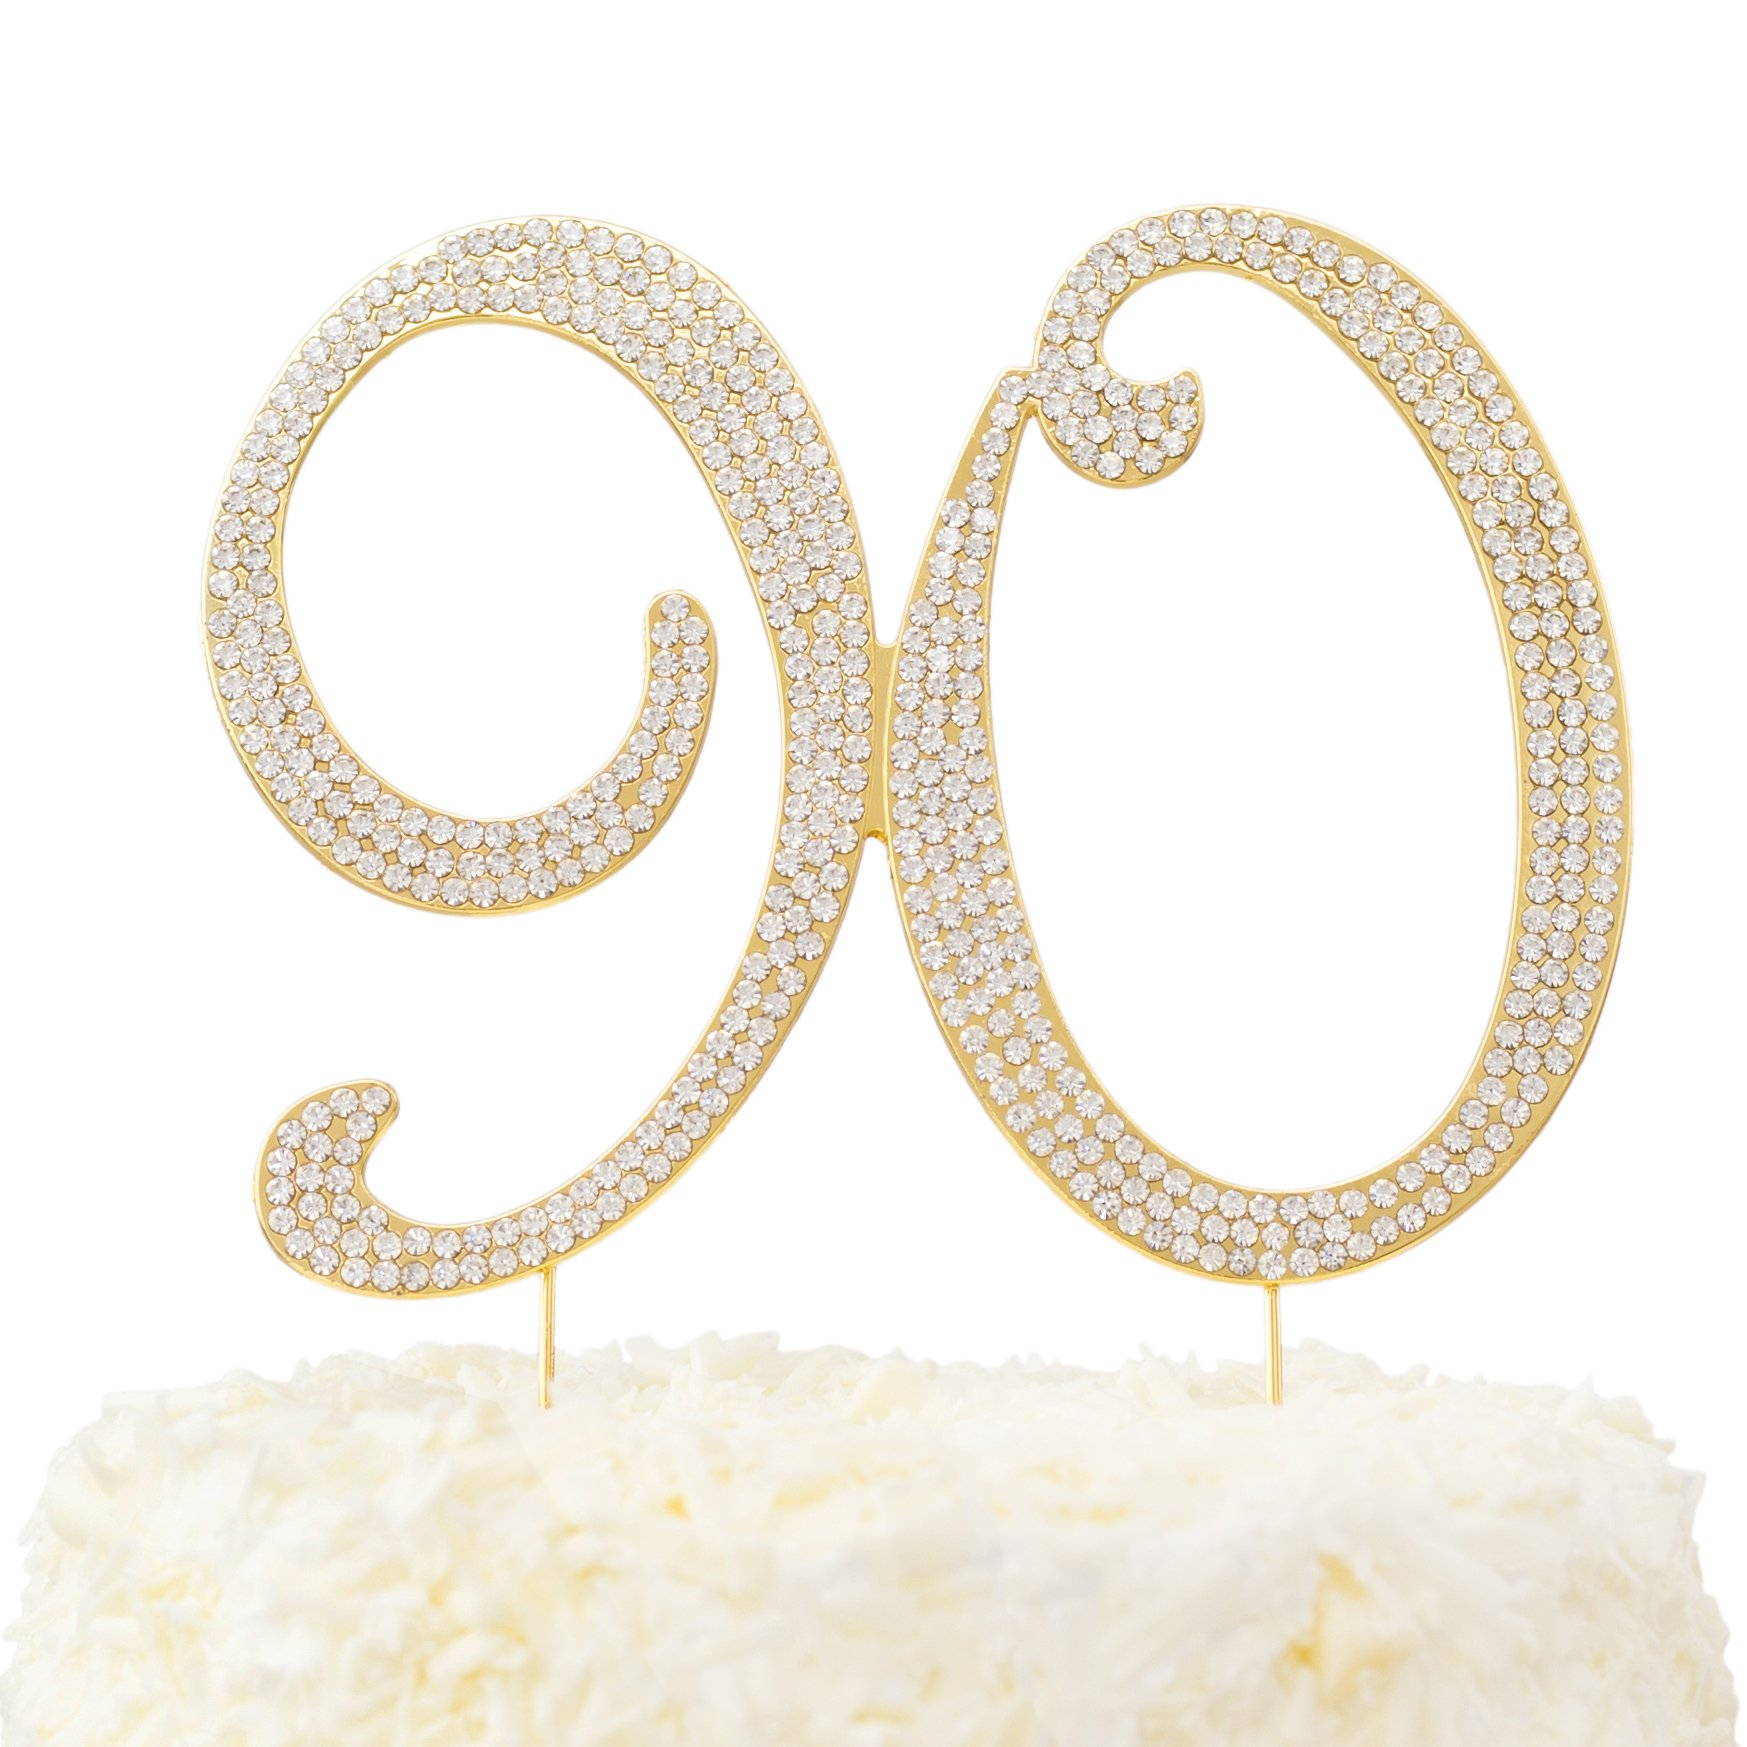 LOVENJOY with Gift Box Rhinestone 90 Cake Topper for 90th Birthday Party Supplies Gold, 5.7 X 4.5'' by LOVENJOY